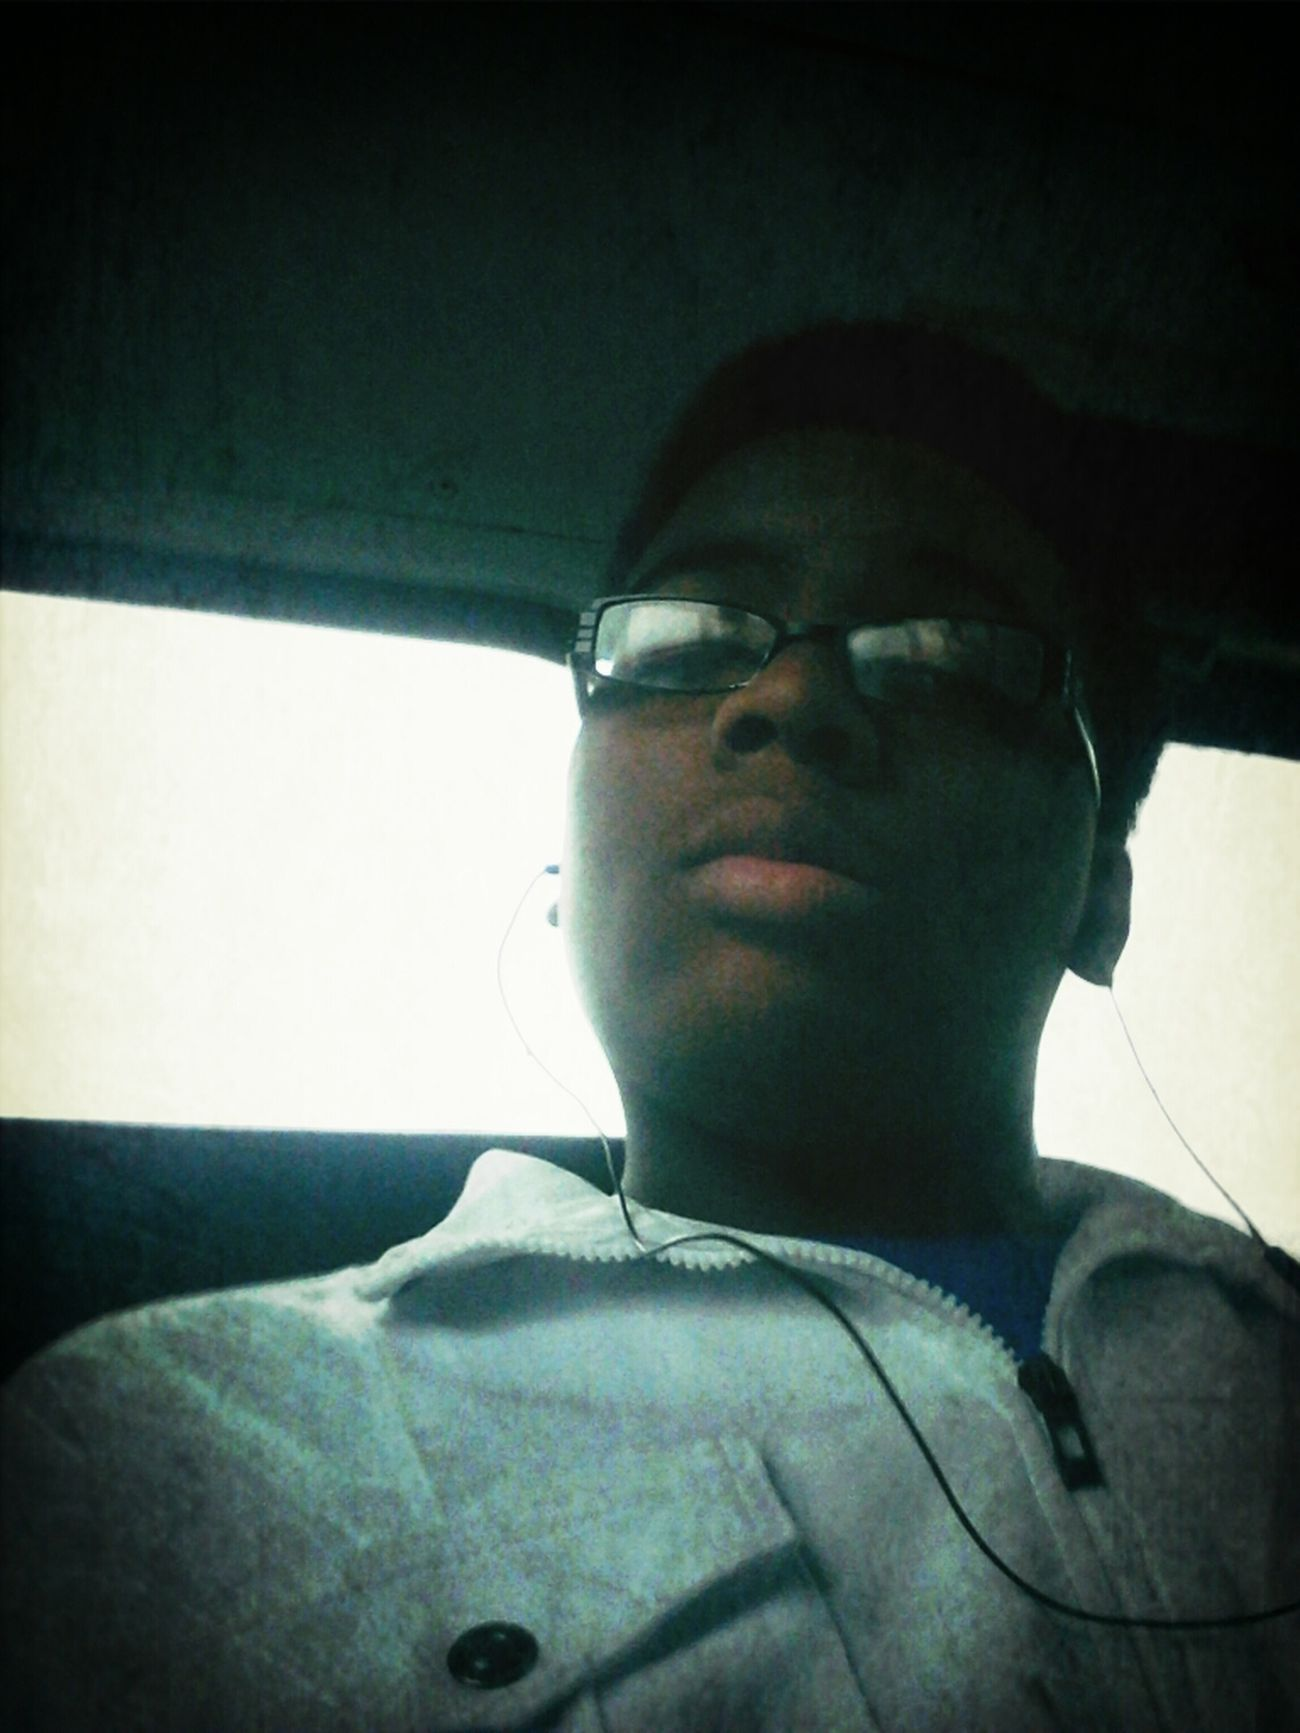 On My Way Home From School